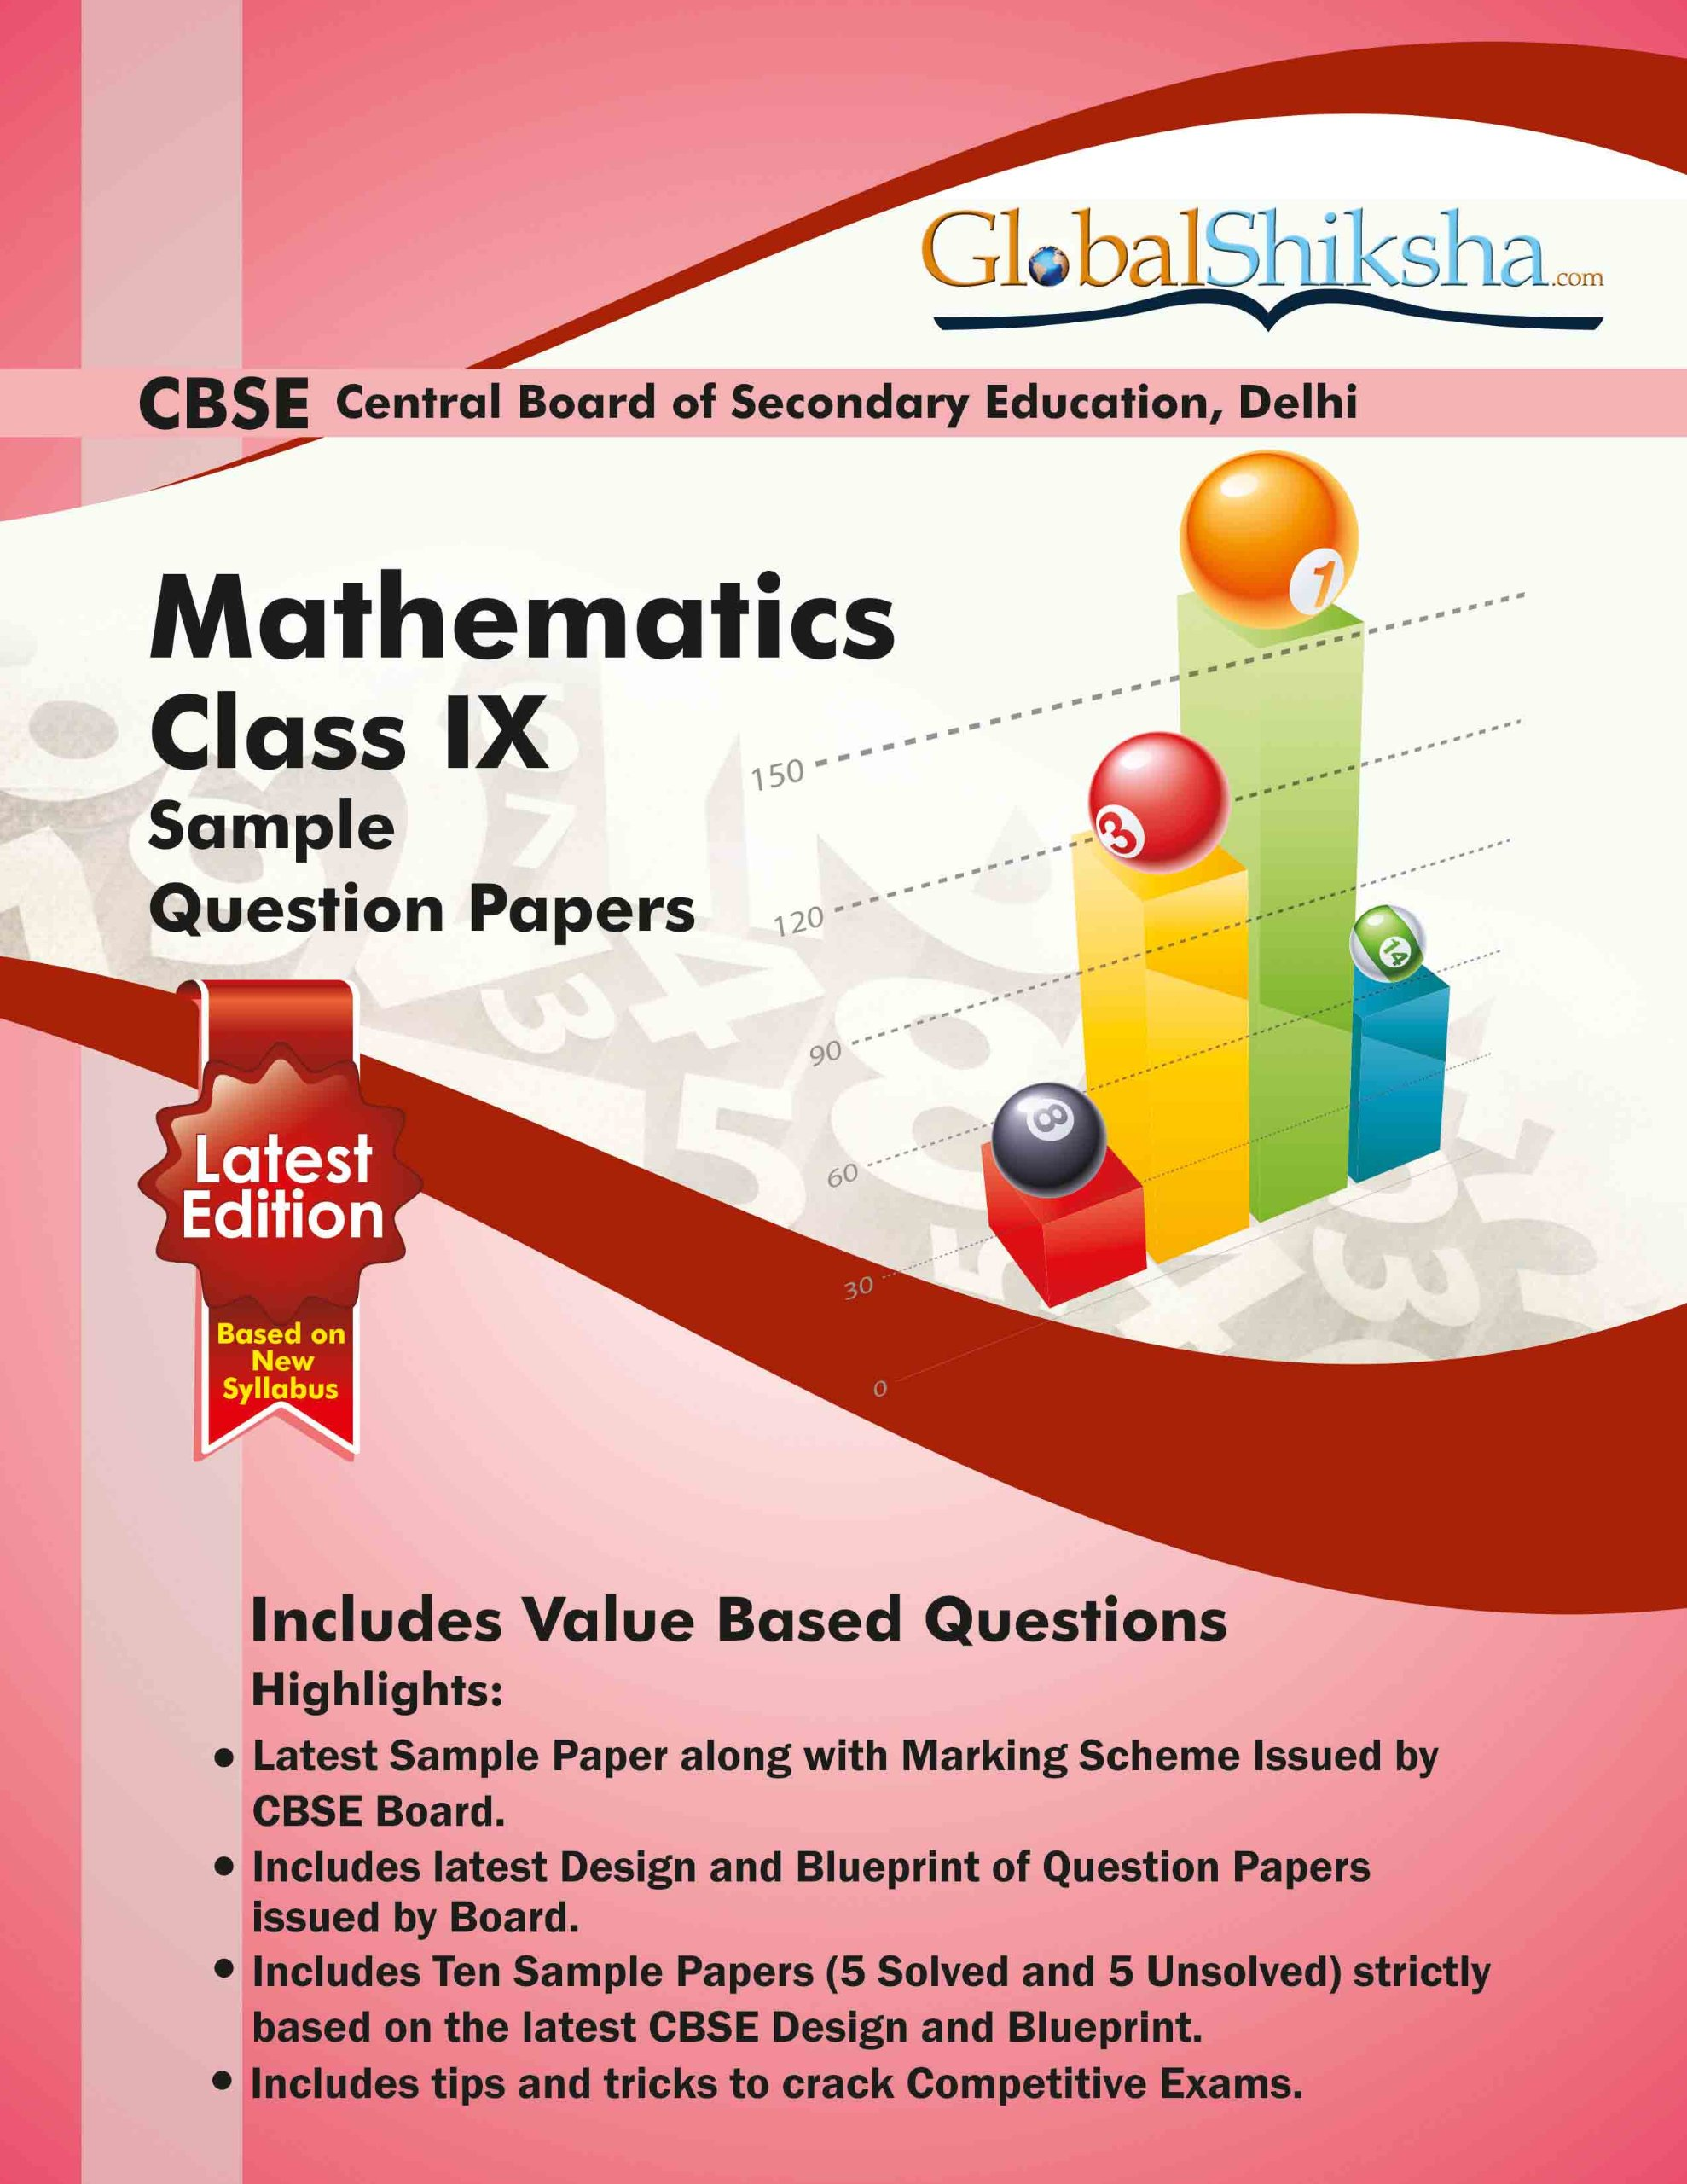 Buy globalshiksha cbse sample papers for class 9 maths book online buy globalshiksha cbse sample papers for class 9 maths book online at low prices in india globalshiksha cbse sample papers for class 9 maths reviews malvernweather Gallery